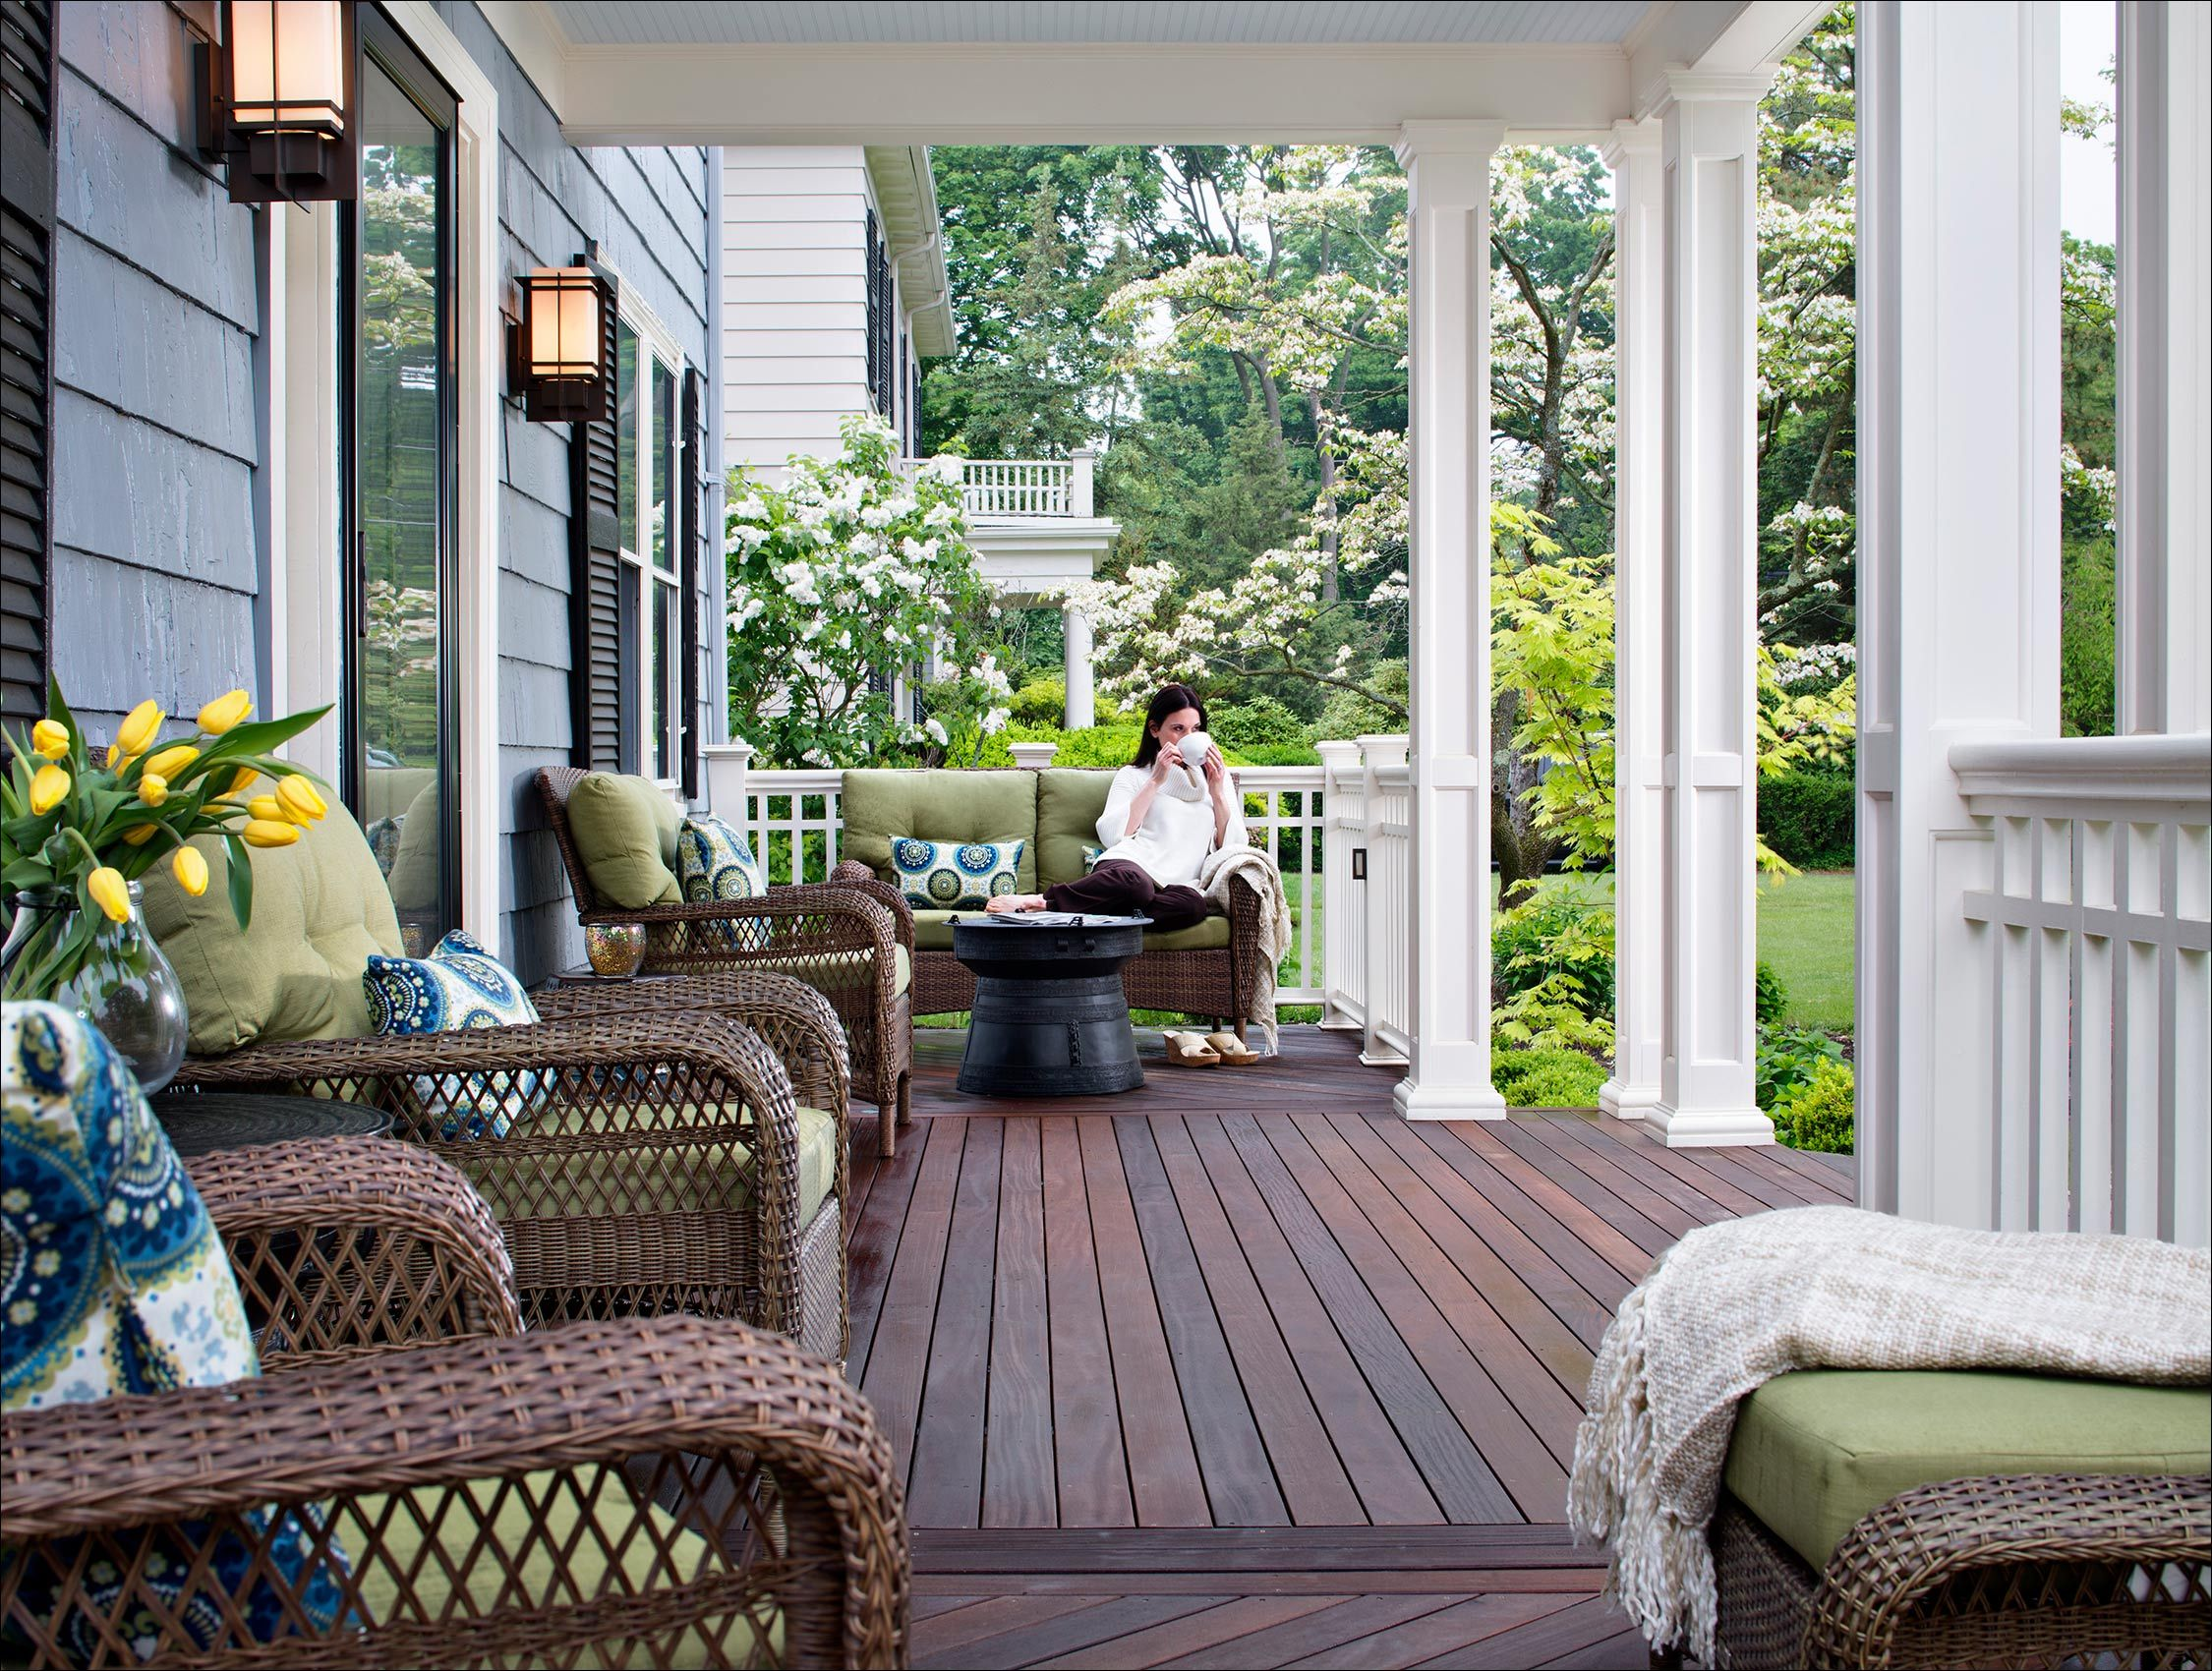 Archadeck_OutdoorLivingBrands_Boston_NewEngland_CommercialPhotography.jpg